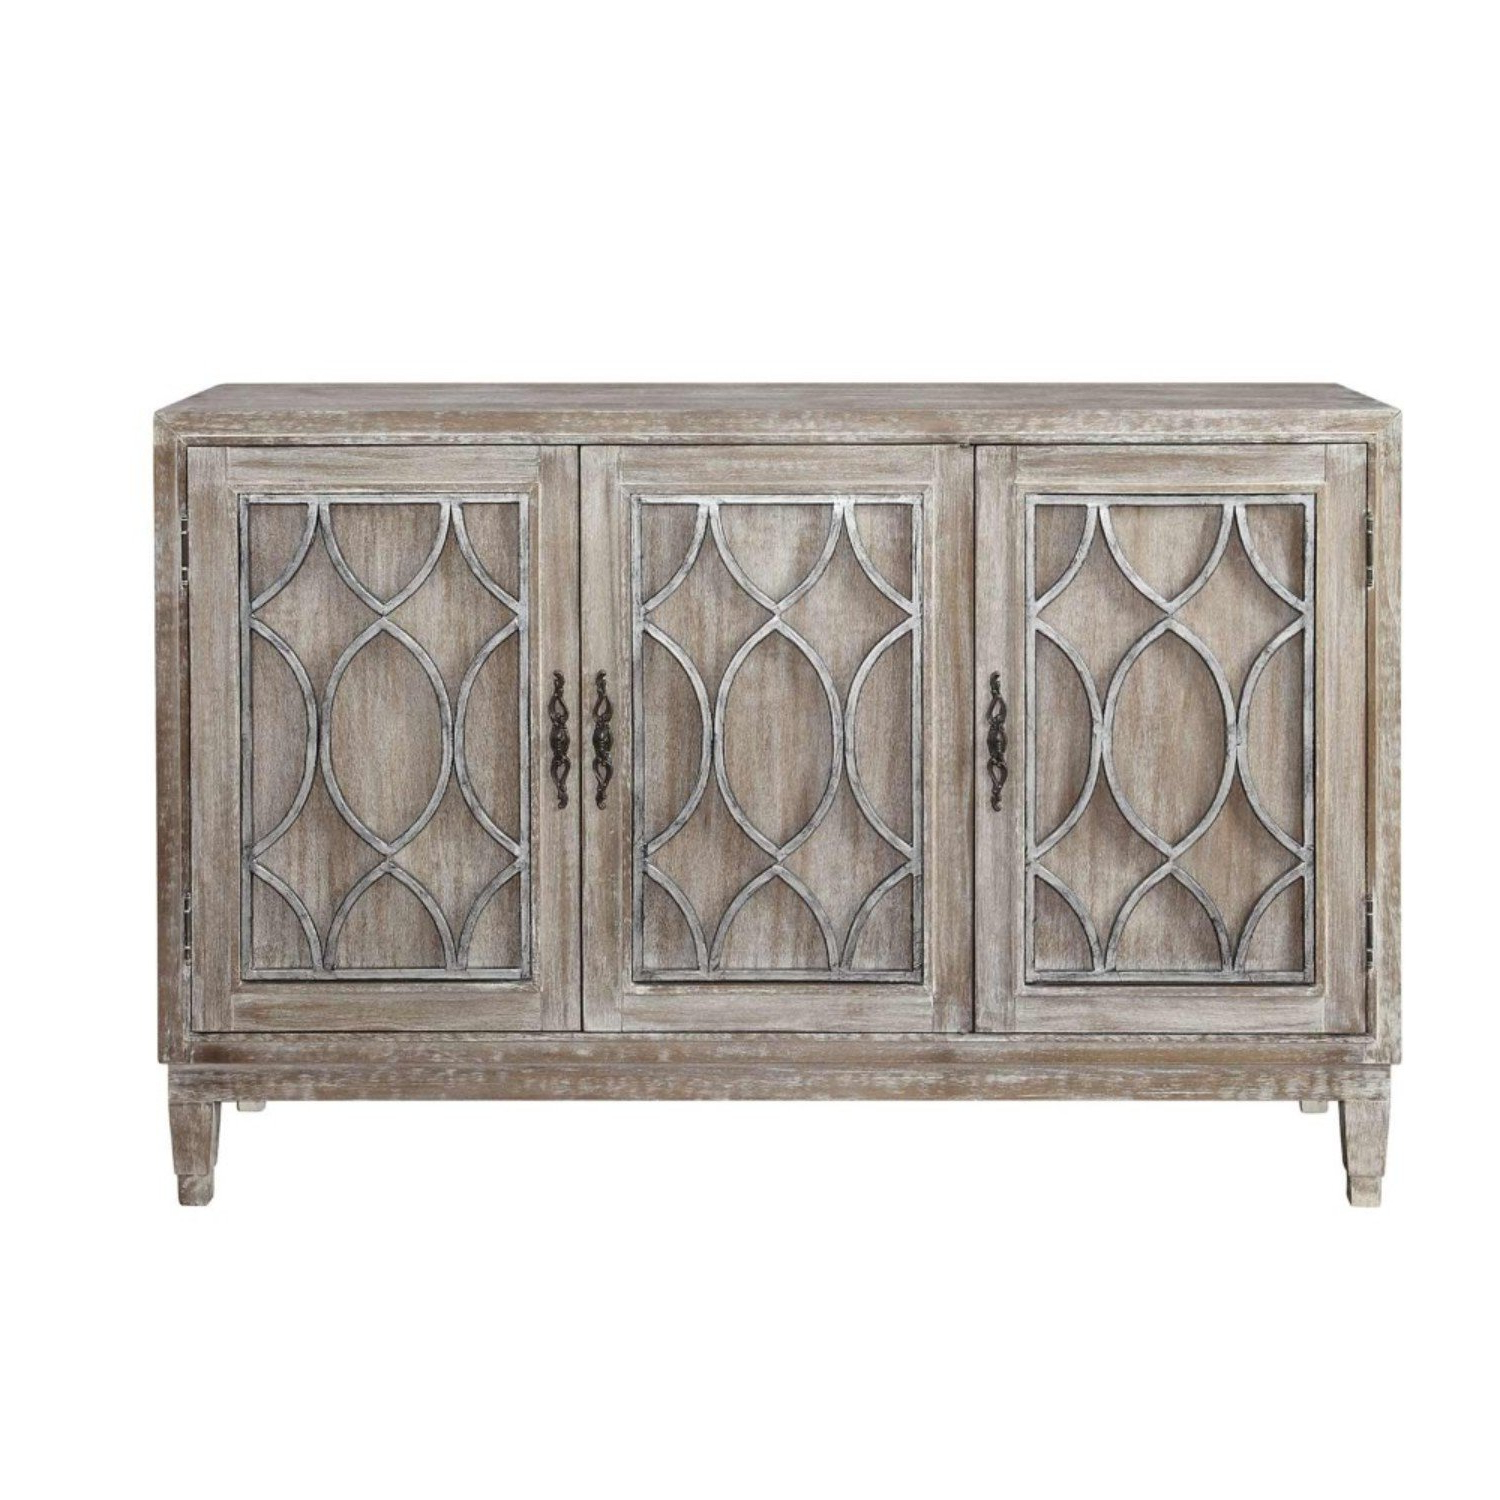 Candide Wood Credenzas With Well Known Dark Wood Credenza (Gallery 13 of 20)